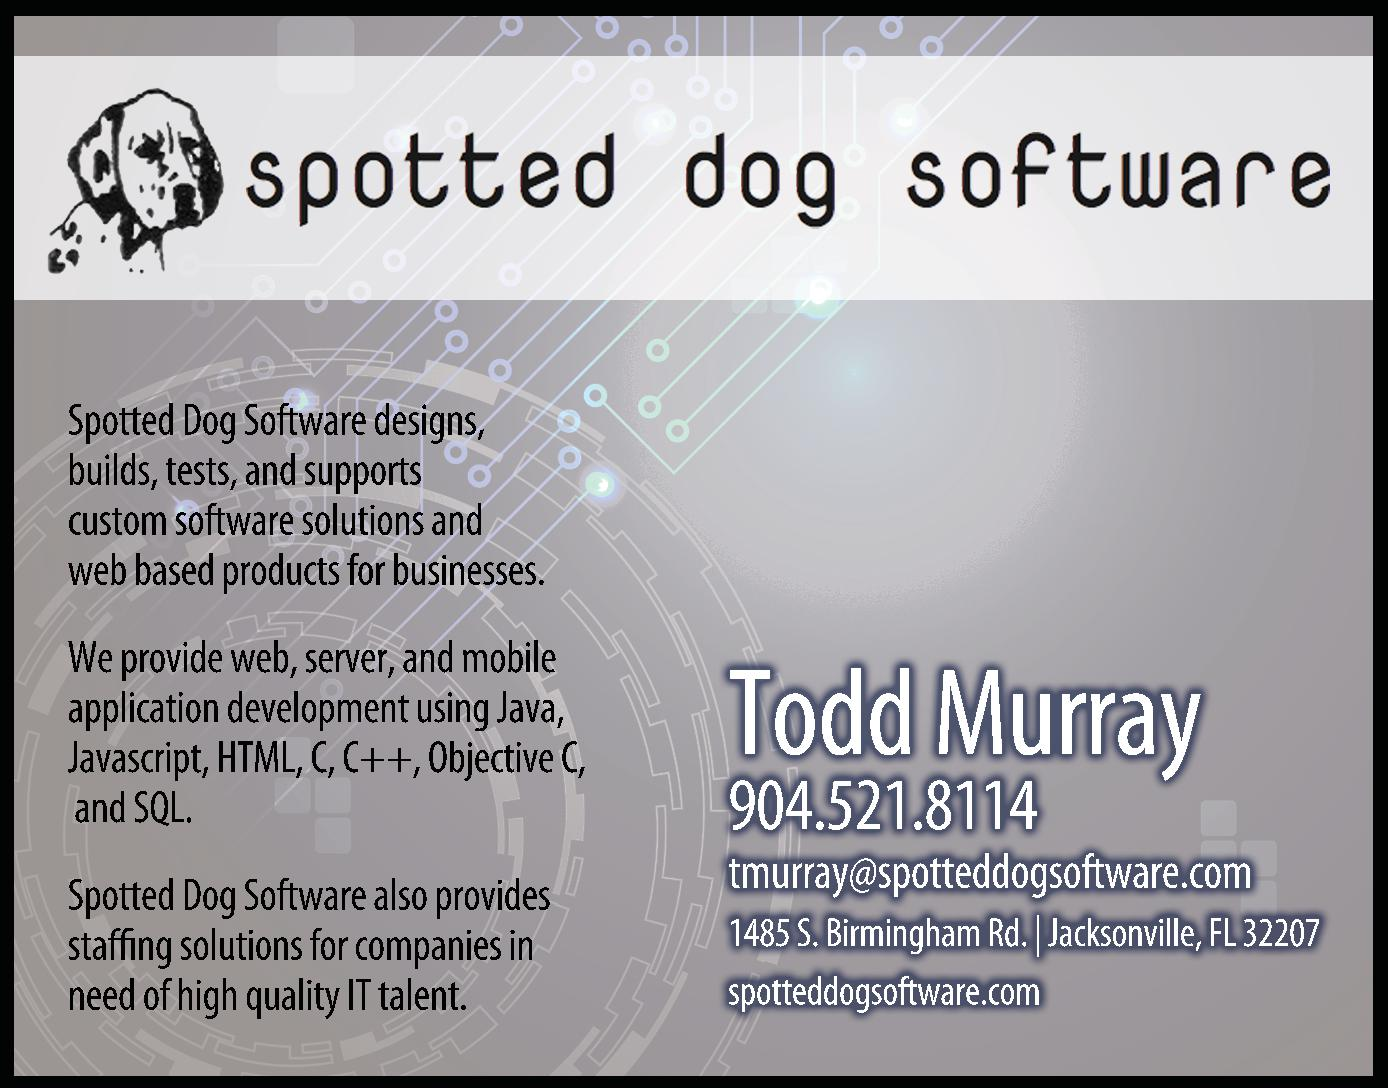 Spotted Dog Software